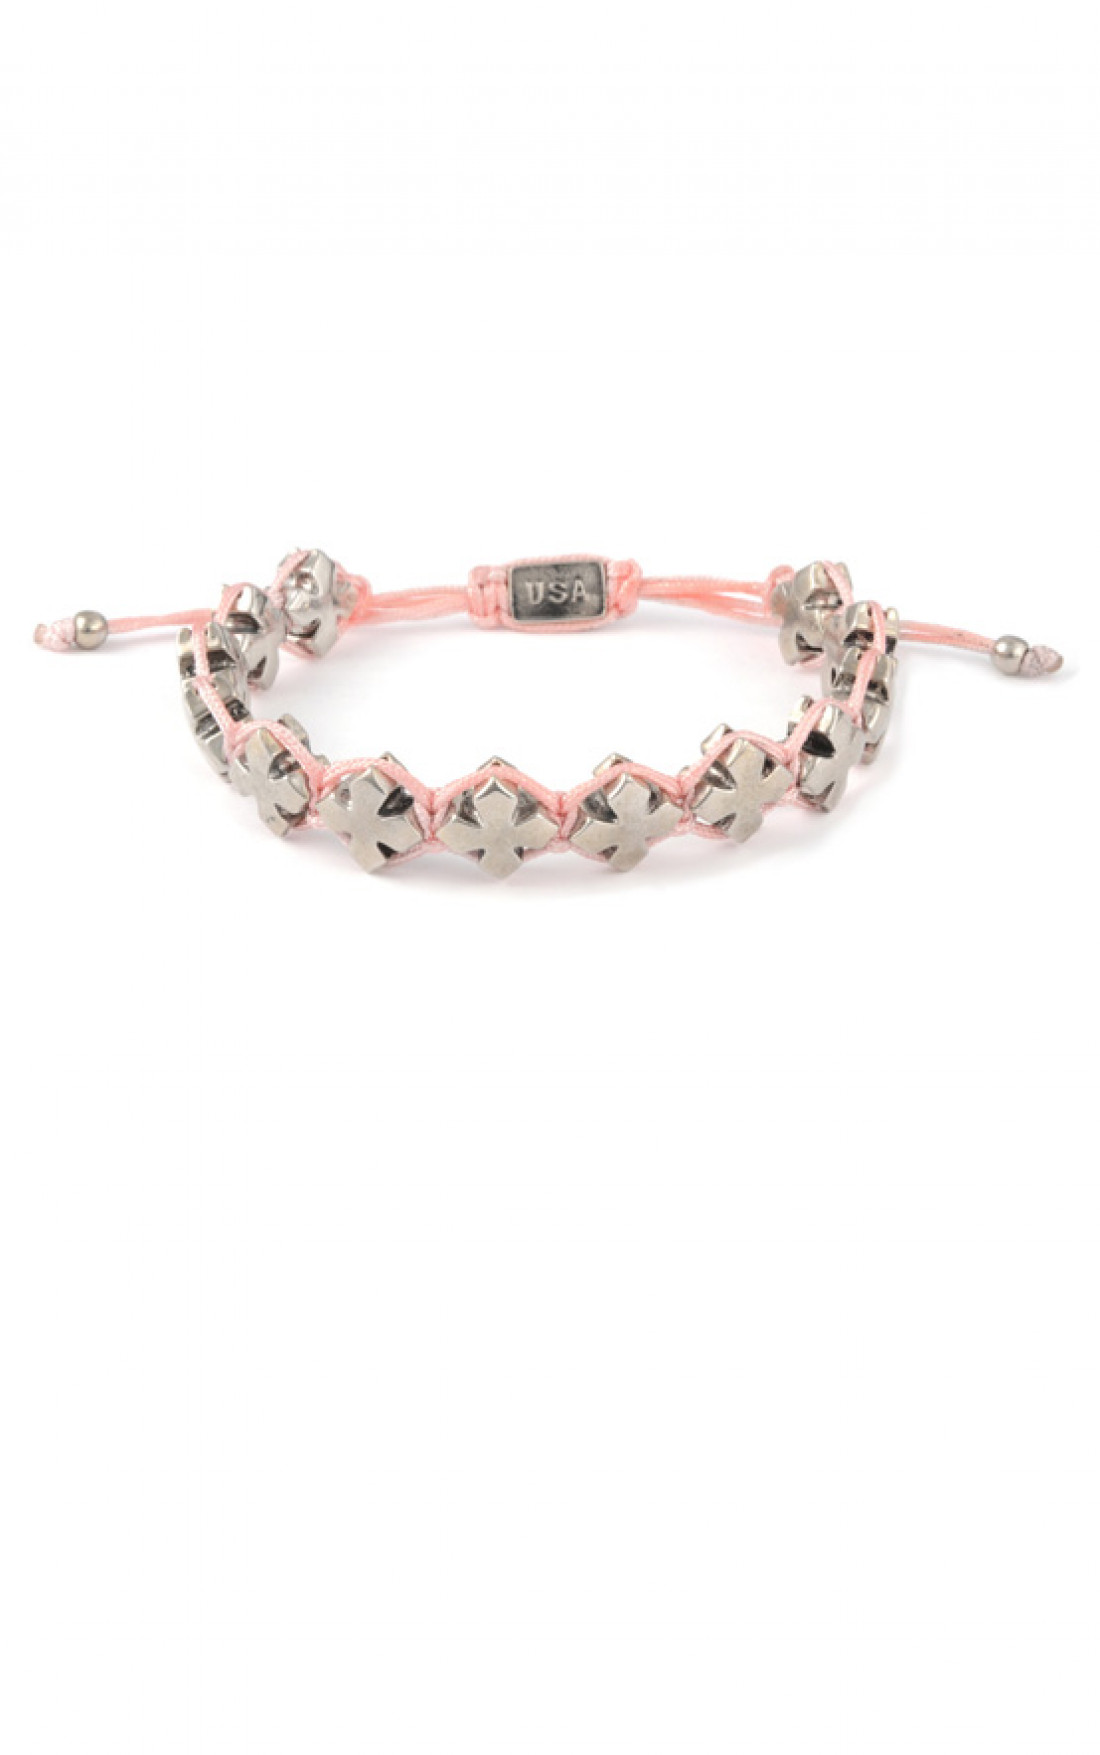 King Baby - Pink Macrame Bracelet With Alloy MB Crosses (Q42-8196)